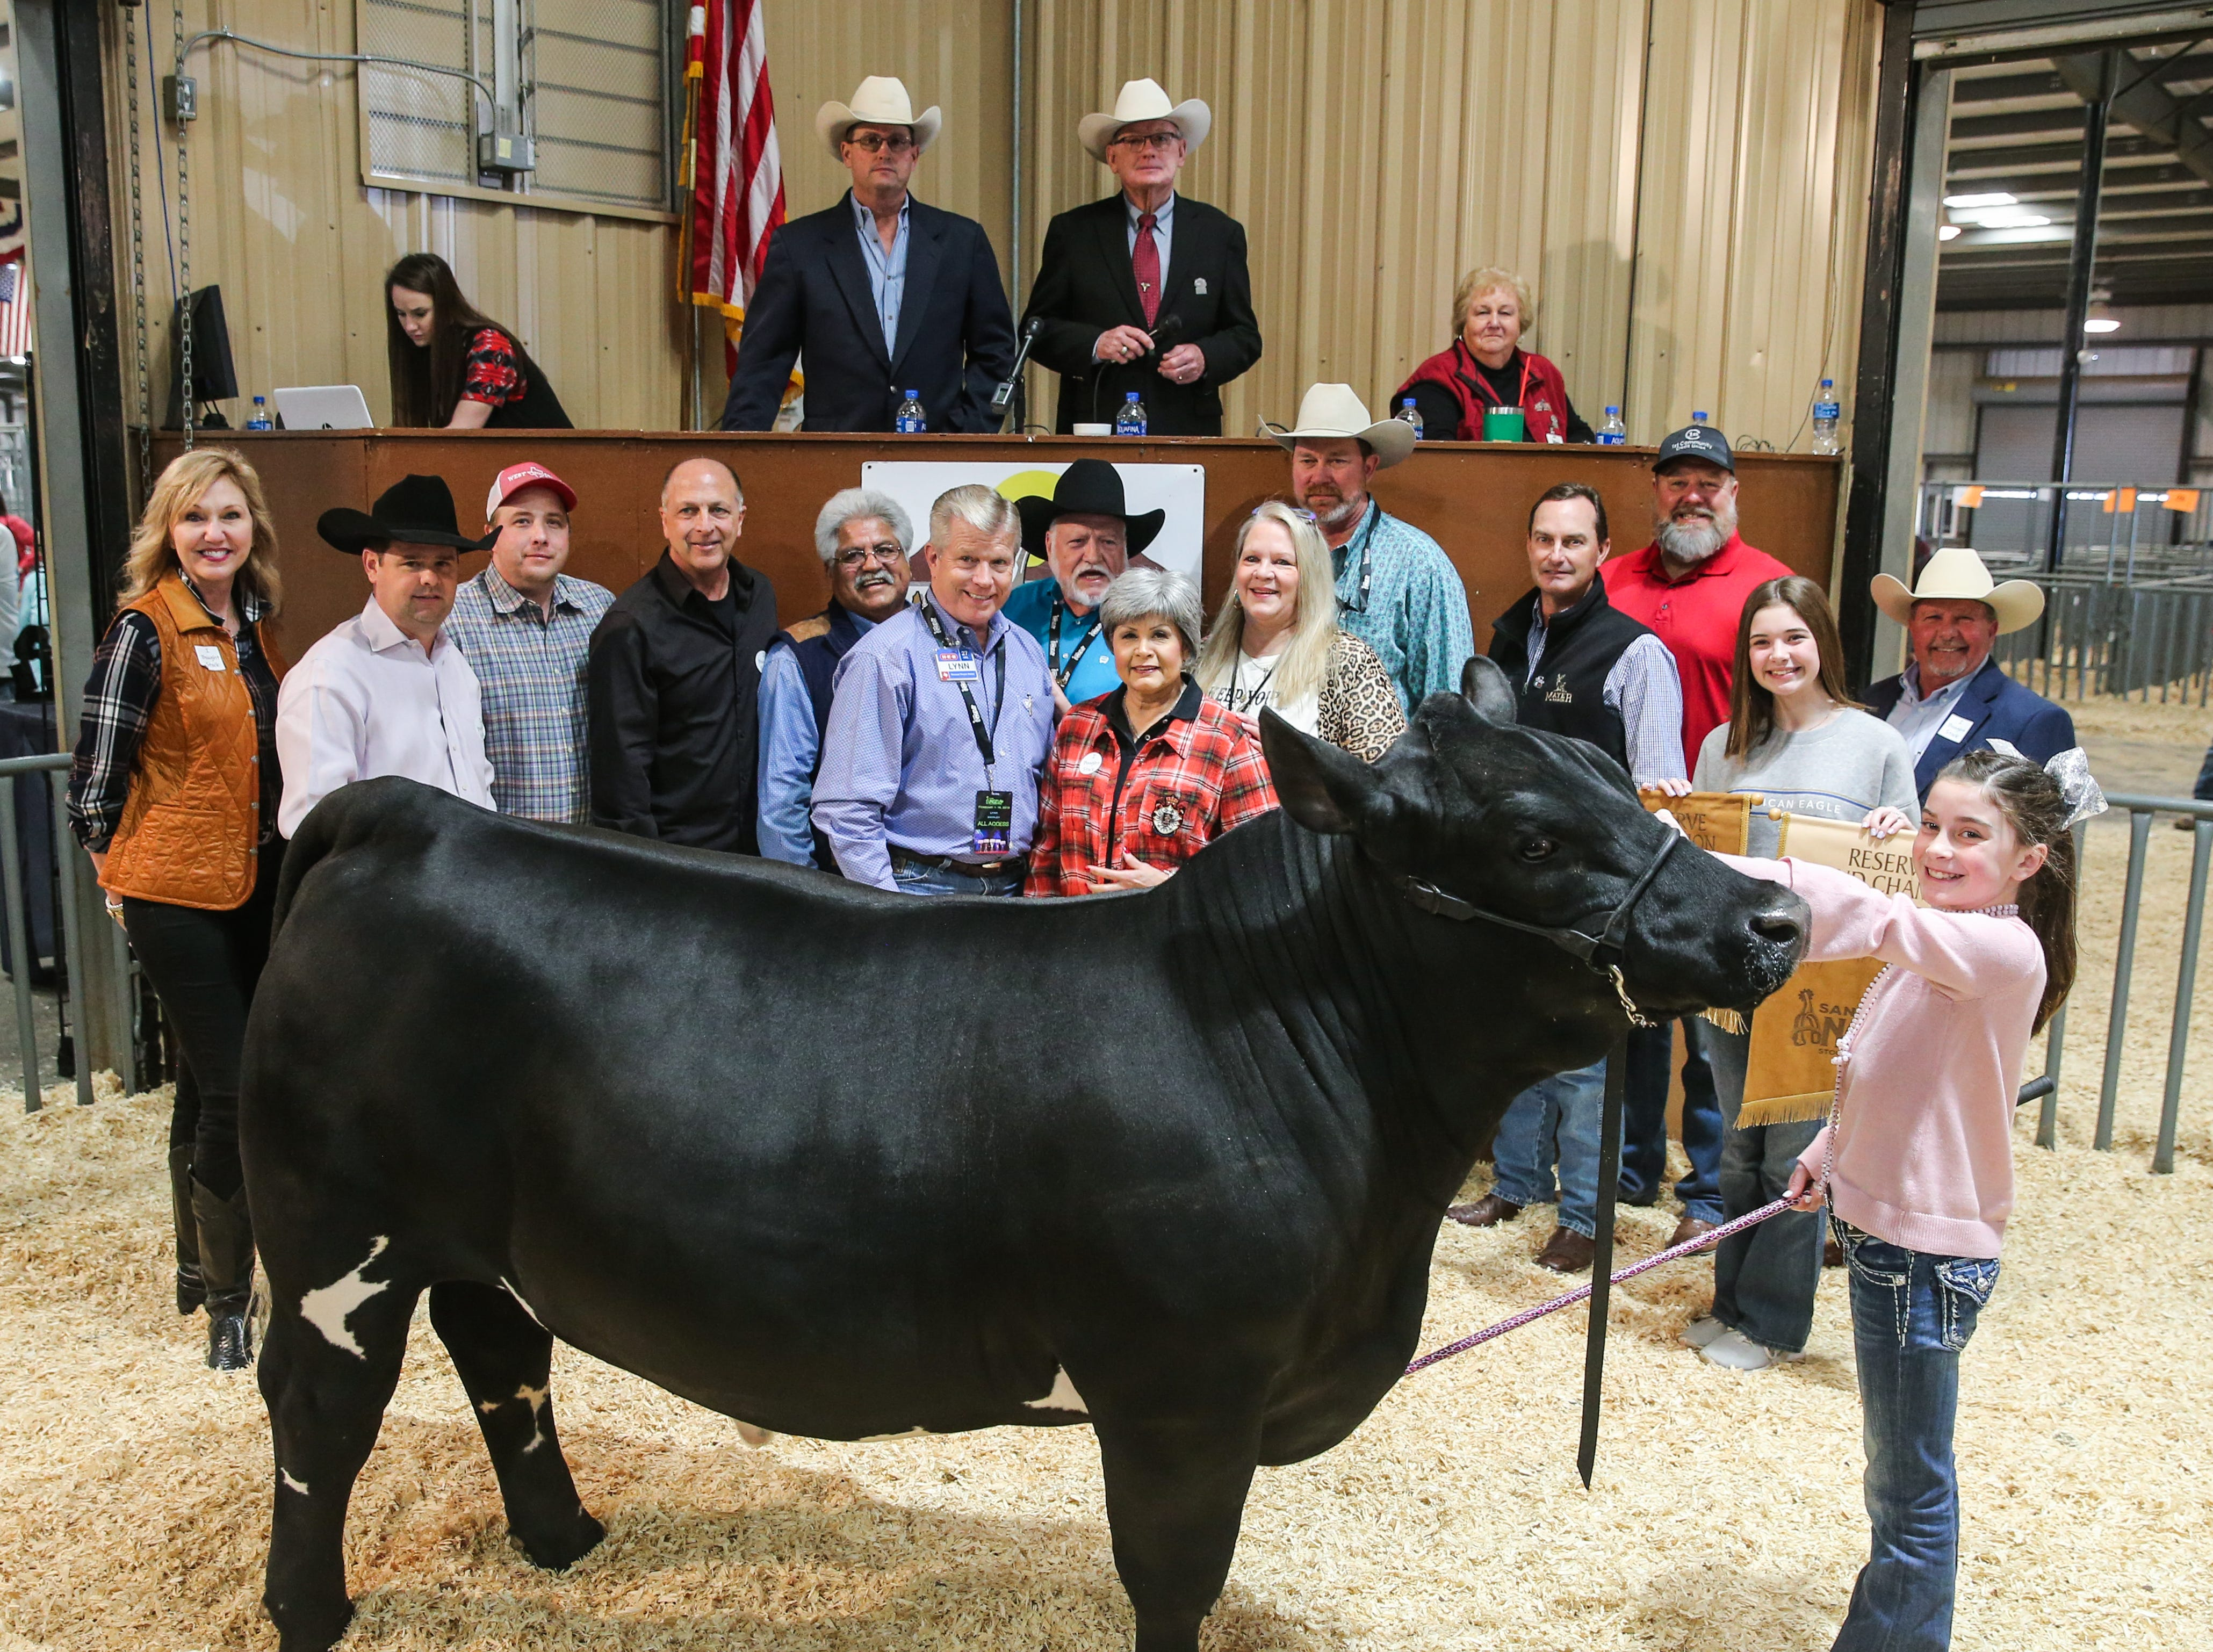 Reserve Grand Champion Steer exhibited by London Bird of Lubbock County 4-H, sold for $25,000.From left to right: Sherry Goode, Firehouse Auto Works; Tommy Neal, Edward Jones; Bubba Davis, West Texas Steel; Phil Gandy, Gandy Ink; Raymond Meza, Twin Mountain Fence; Lynn Shipley, H-E-B; Clay Cross, Cross Country Construction; Toni Sudduth, Trans Texas Southwest Credit Union; Debbie Cross, Cross Cuts Salon; Derek Morrison, Southern Glazer's Wine and Spirits; John Mayer, Mayer Ranch; Bill Nikolauk, 1st Community Federal Credit Union; Berkley Bird (holding banner); Todd Price, Jim Bass Ford; London Bird, exhibitor. Not pictured: Weatherby Ranch.